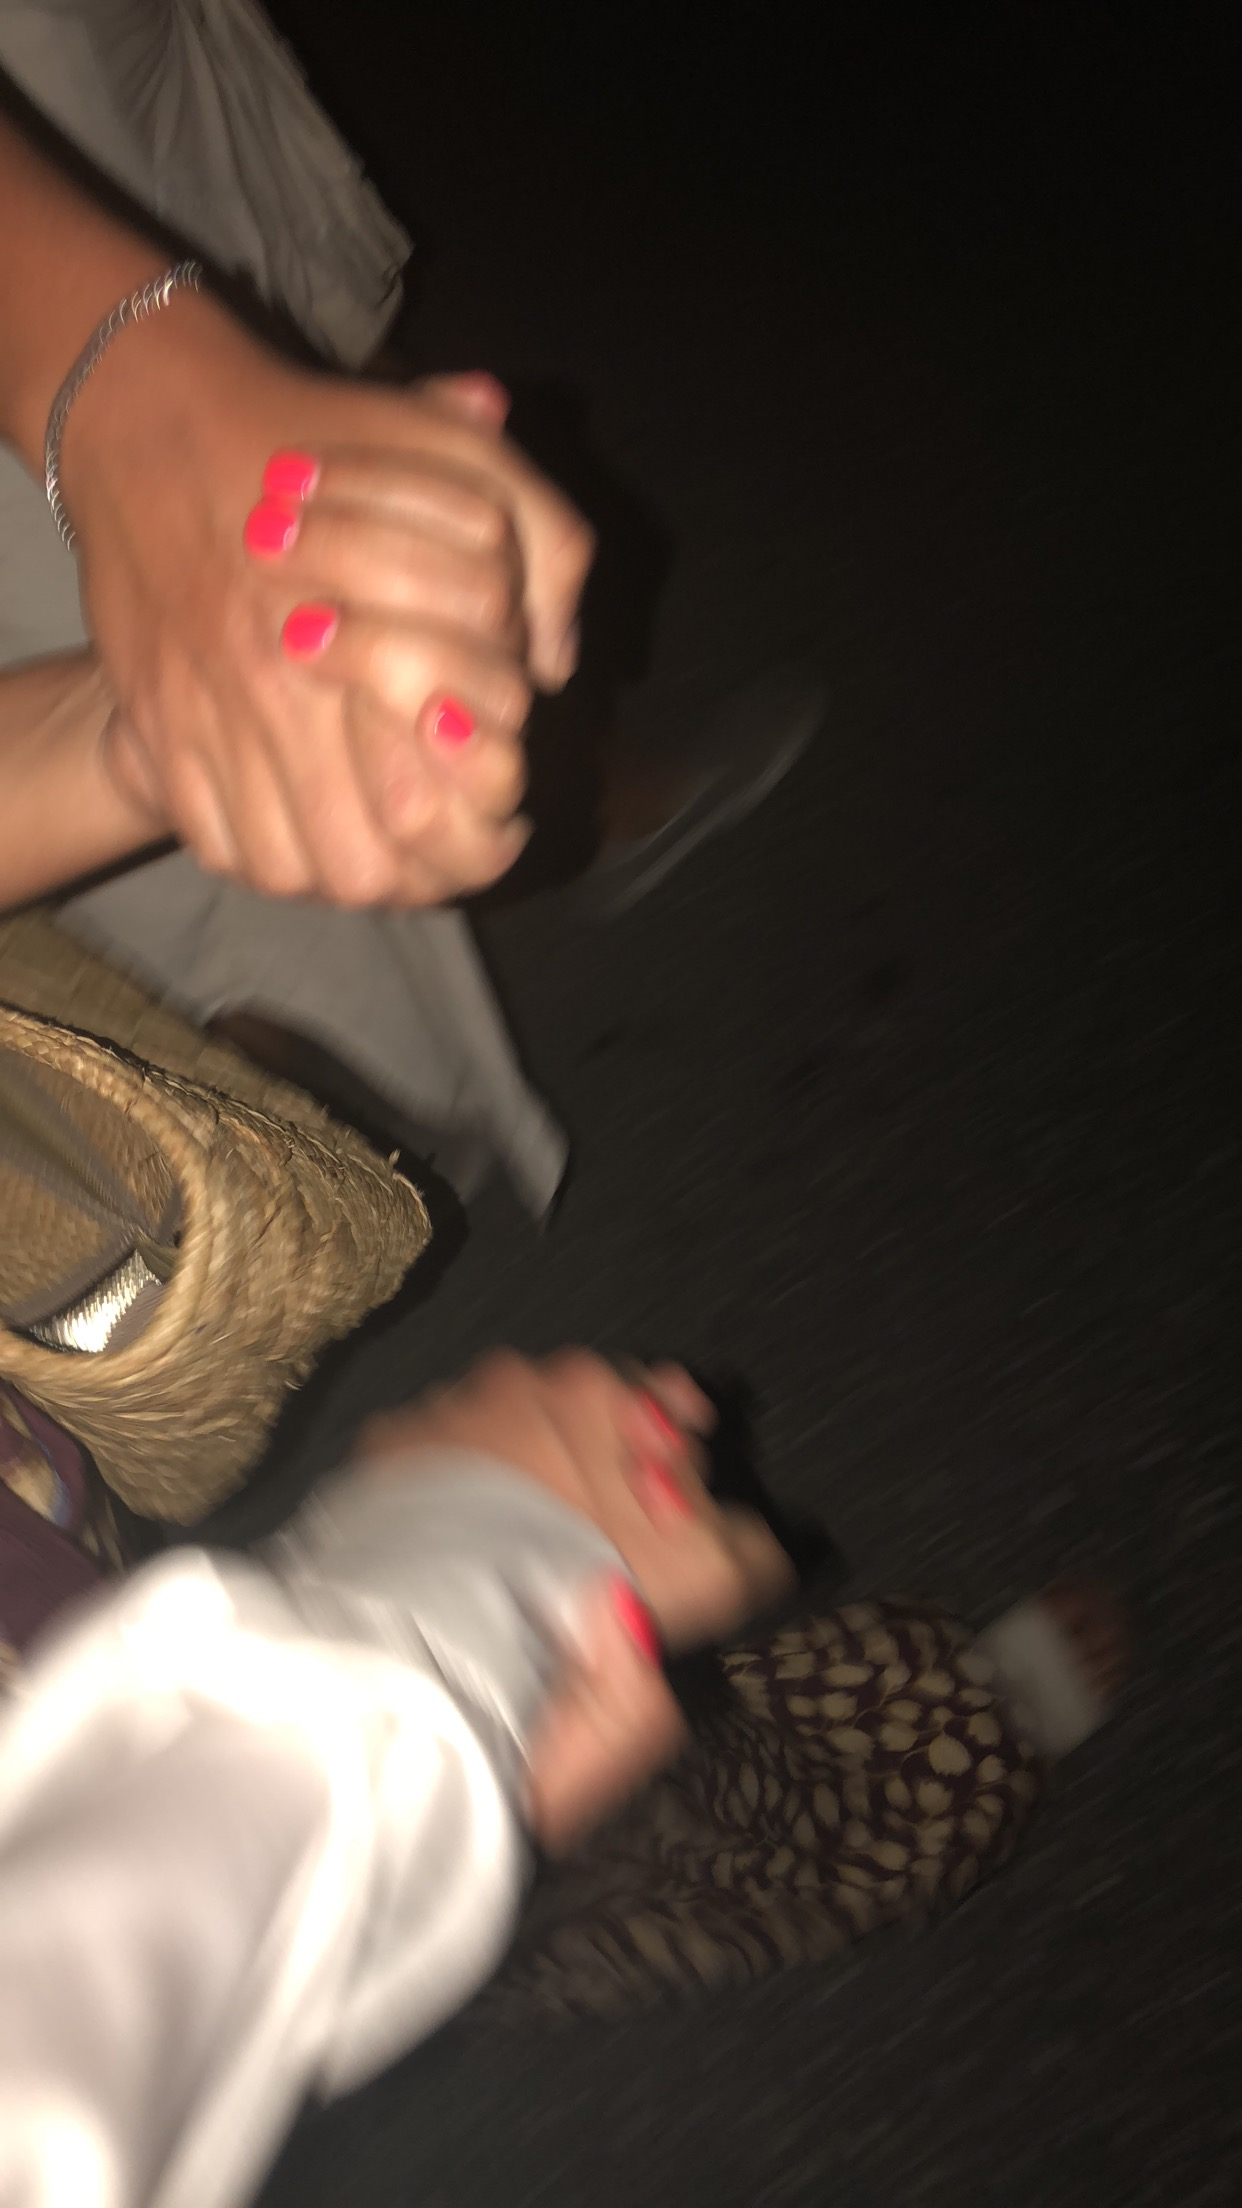 Lauren, Gianna and I holding hands on the way home from the Fish Fry-safety first!